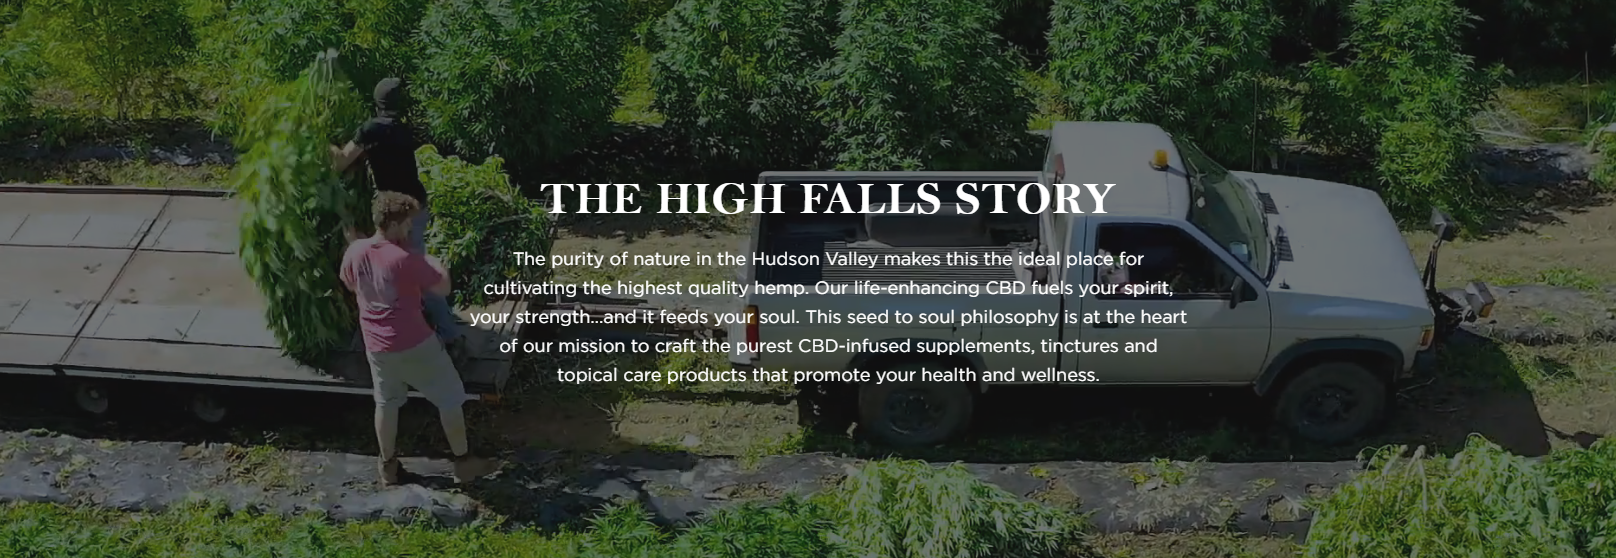 High Falls Hemp story image